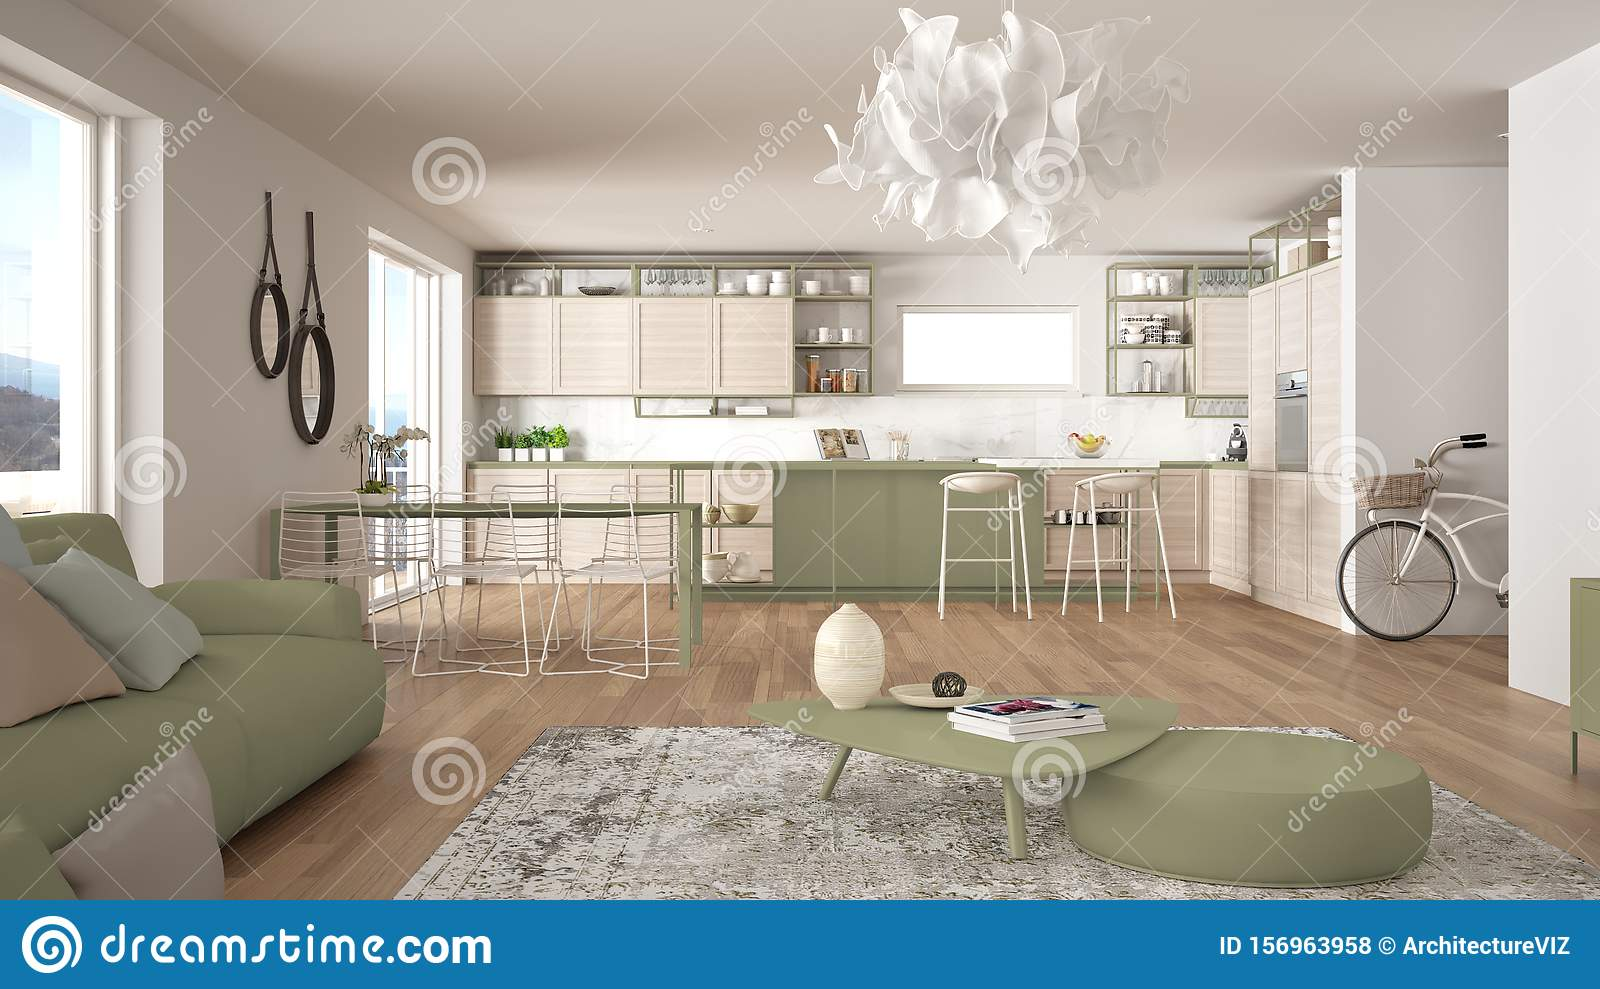 Penthouse Living Room And Kitchen Interior Design Lounge With Sofa And Carpet Dining Table Island With Stools Parquet Modern Stock Photo Image Of Architecture Design 156963958